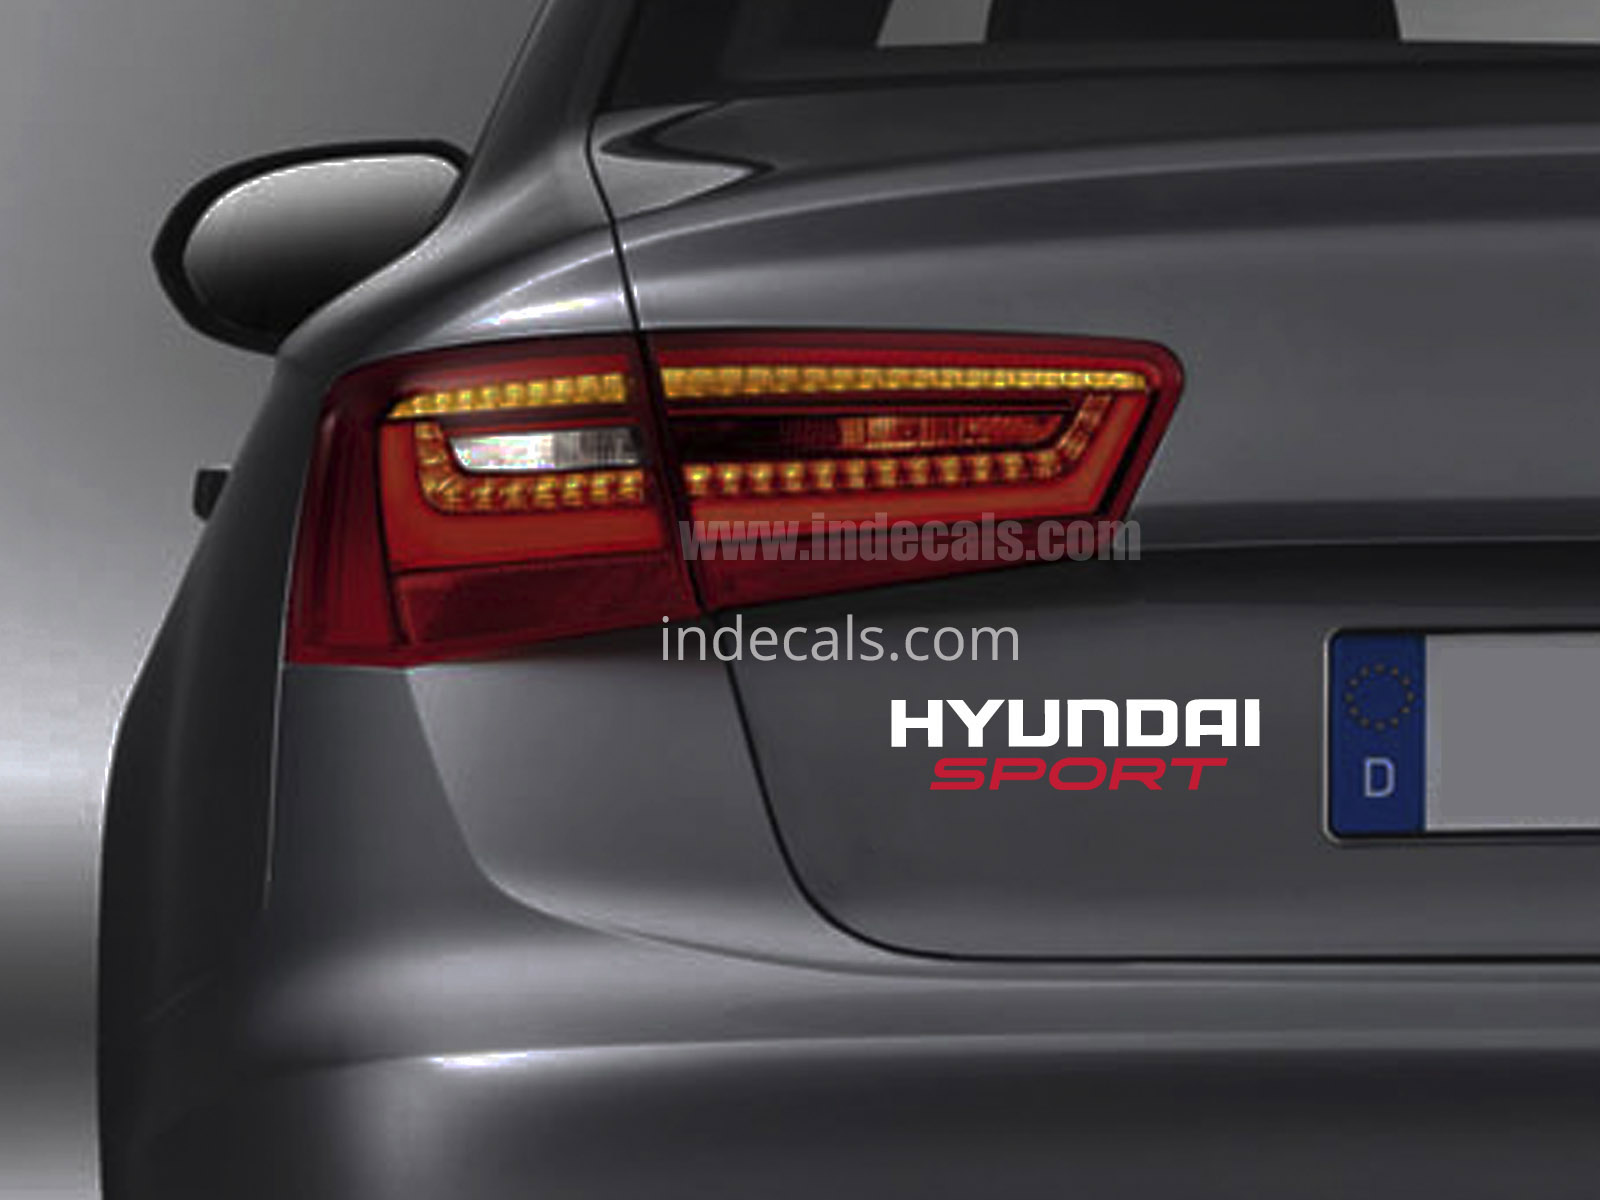 1 x Hyundai Sports Sticker for Trunk - White & Red